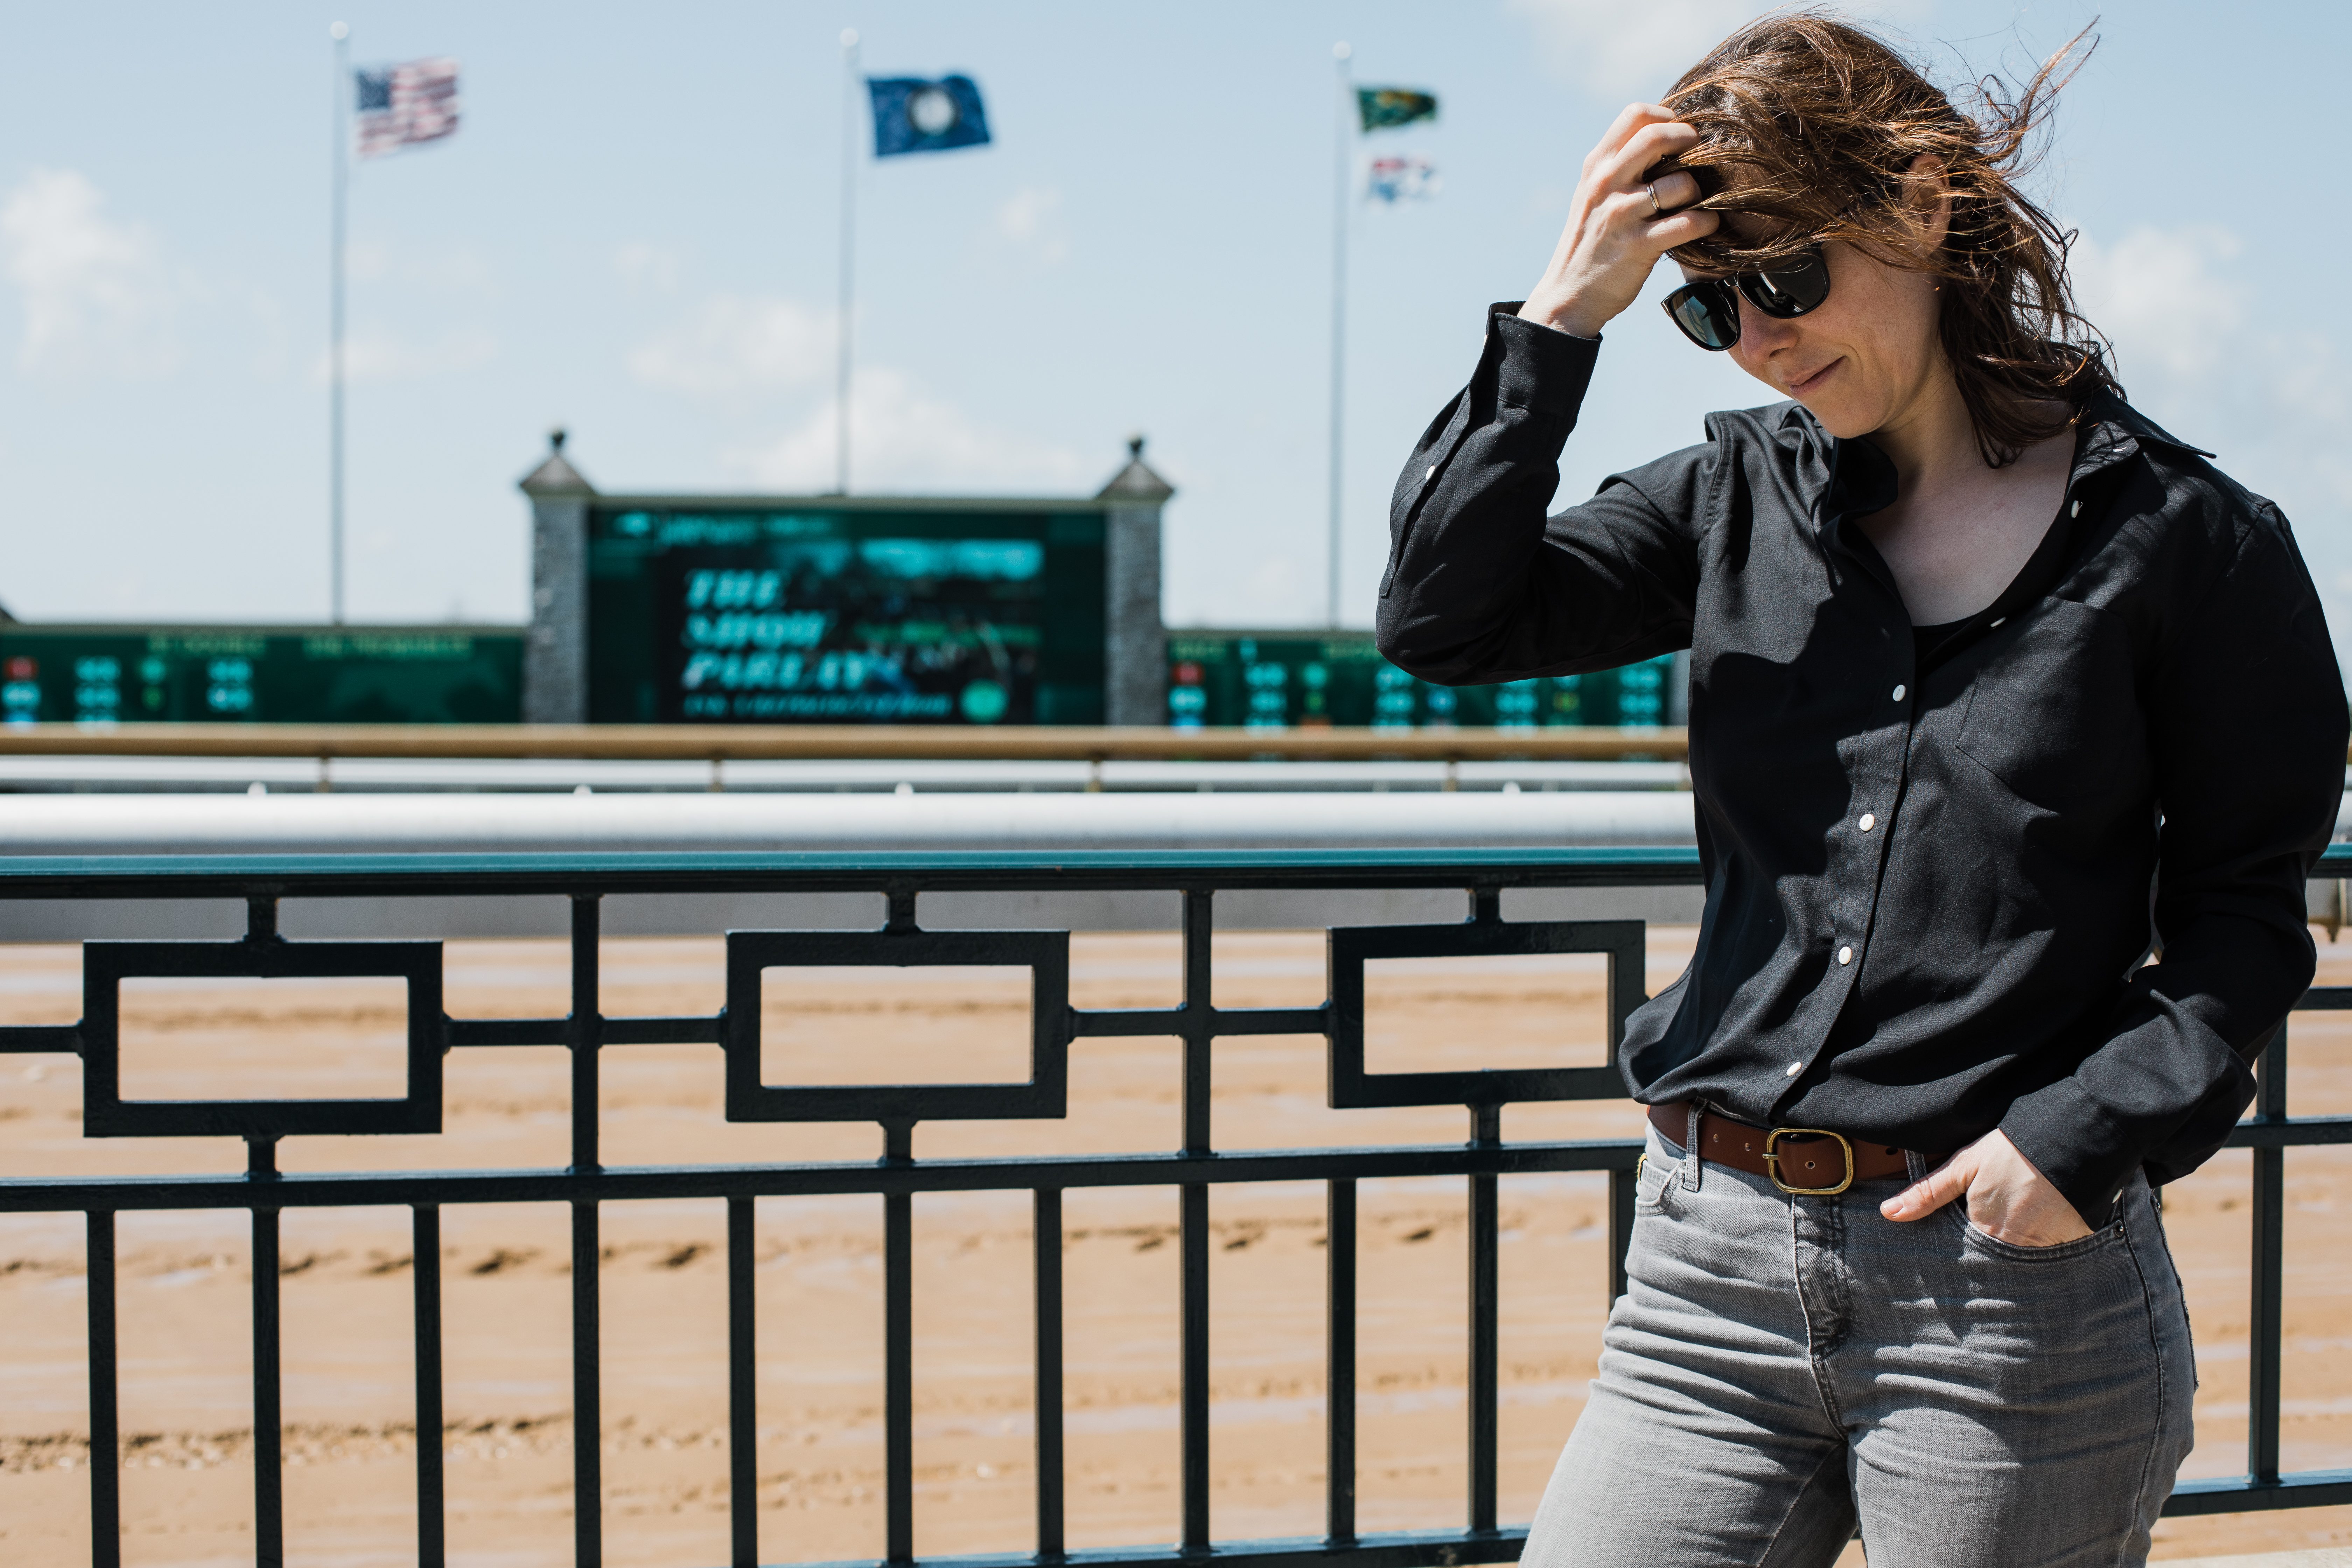 Wool & Prince Women's fitted shirt at the horse races in Kentucky